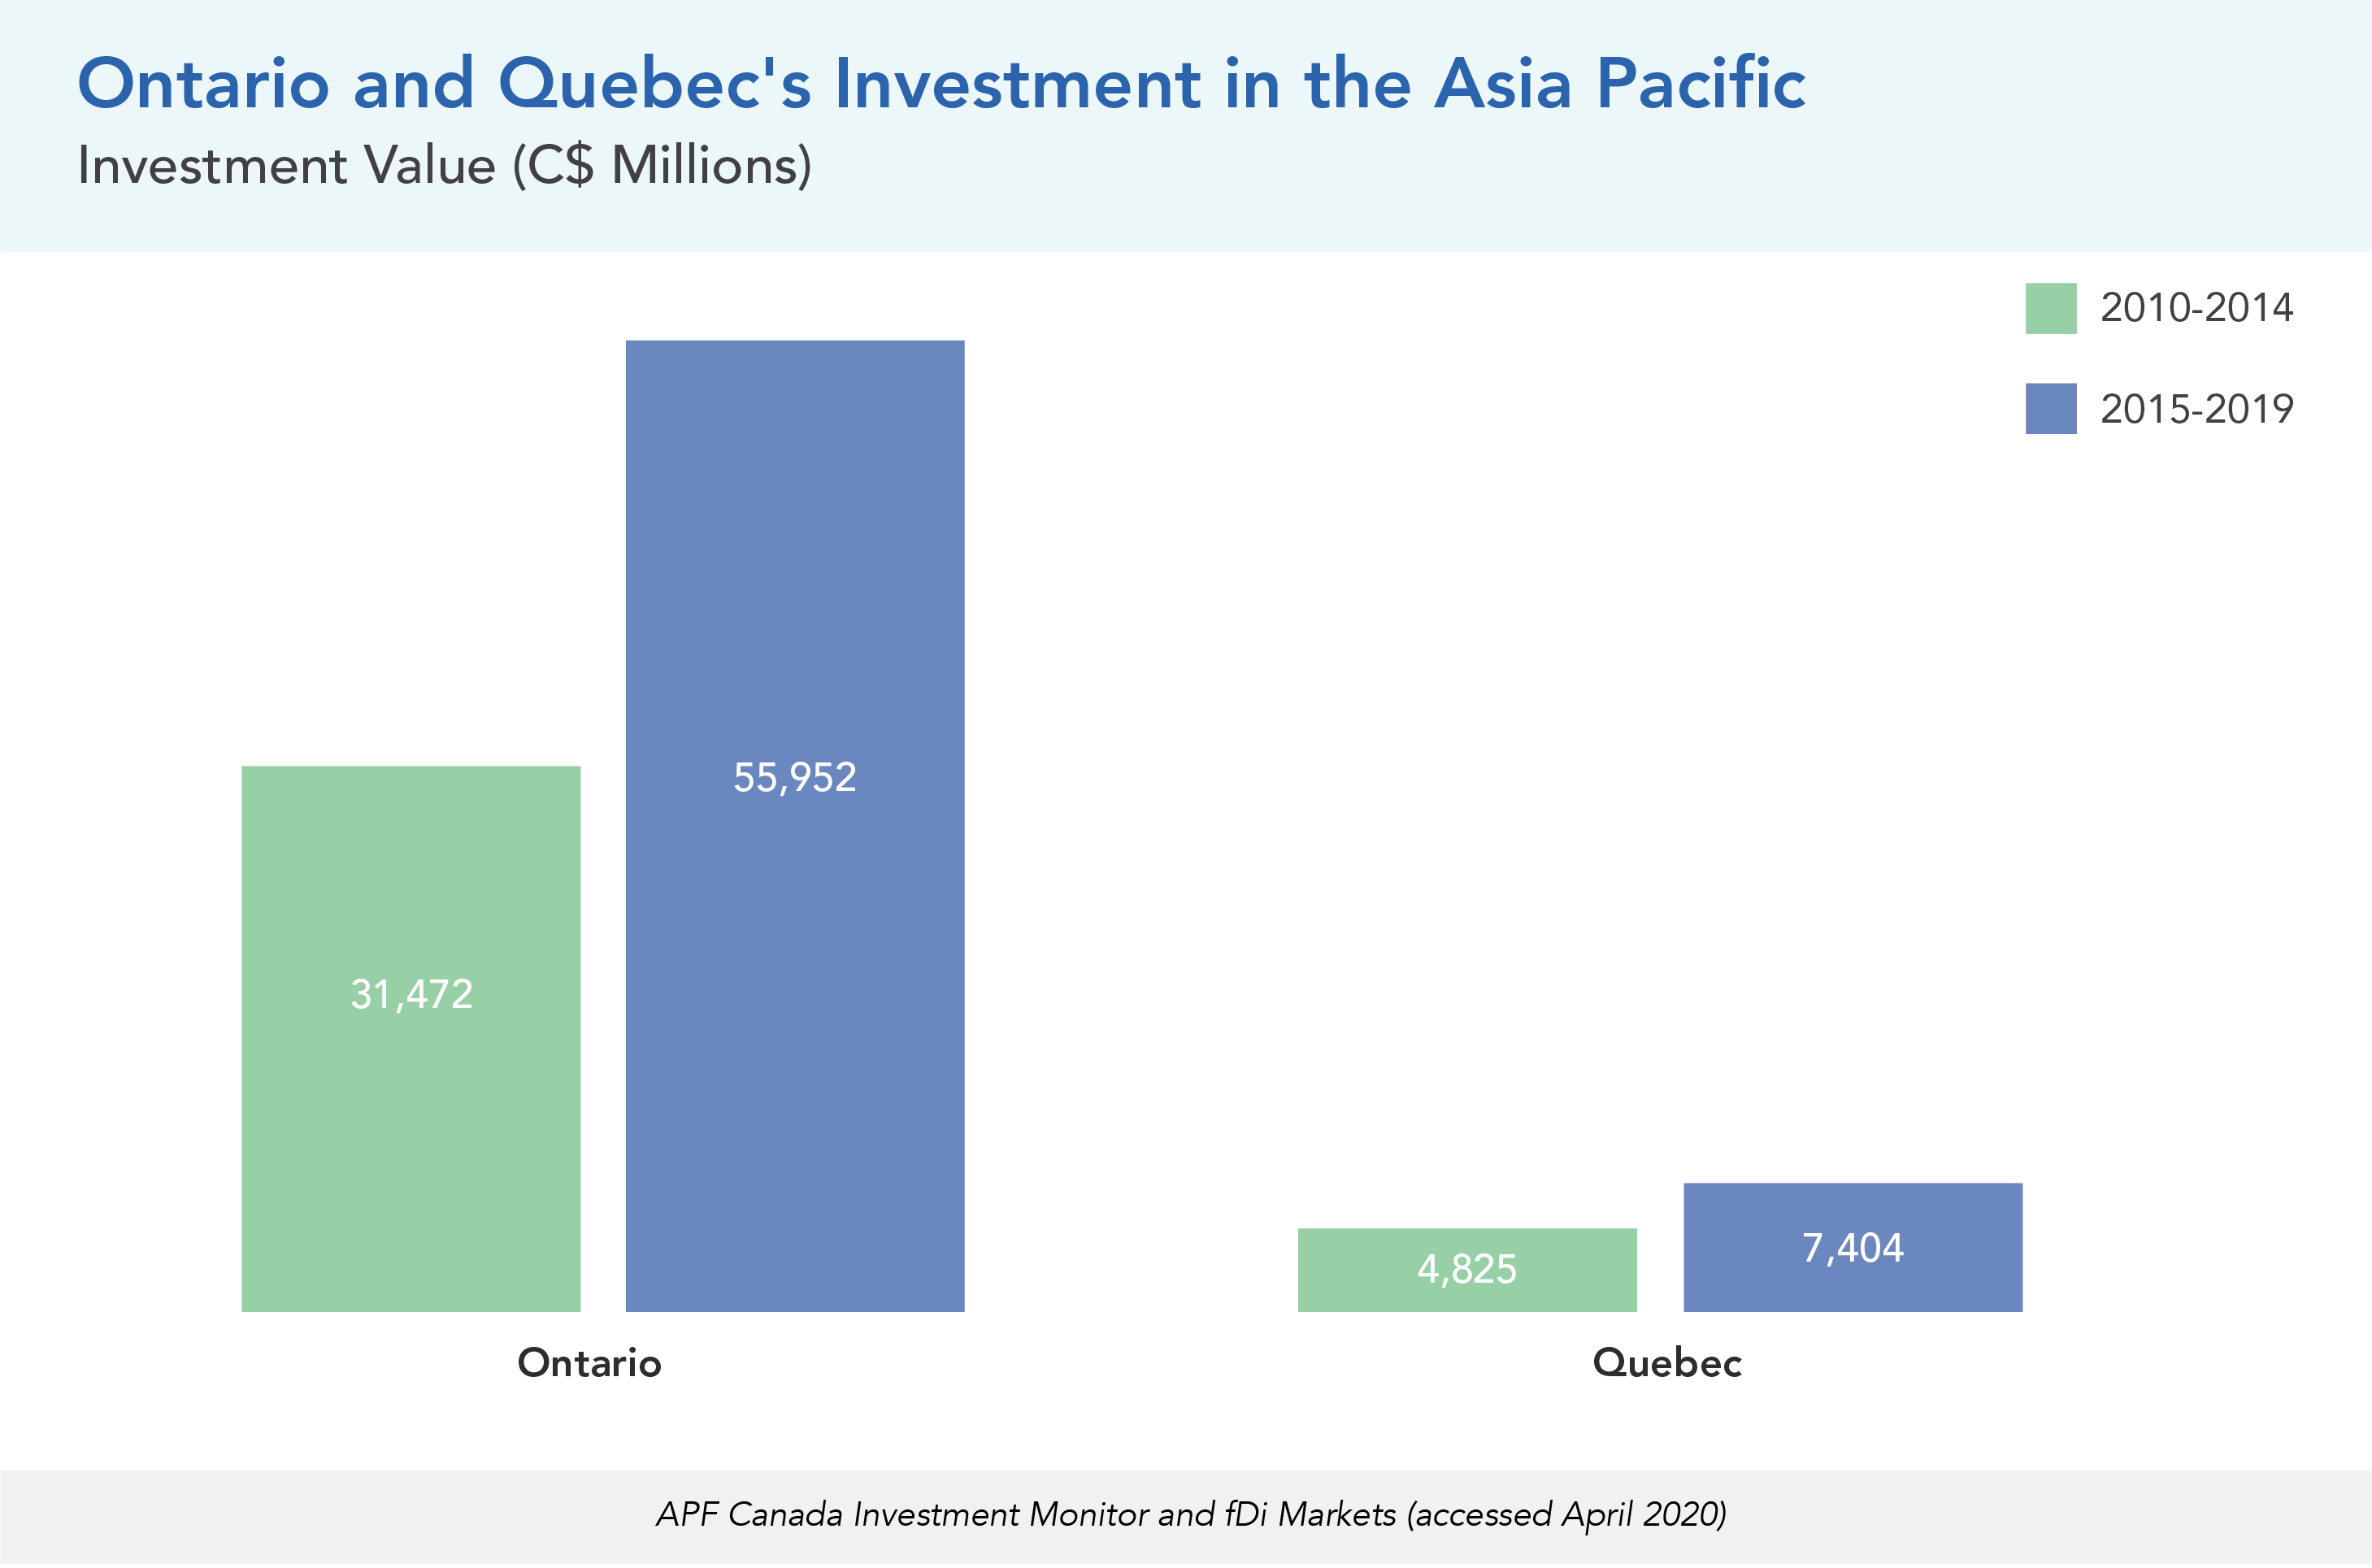 Ontario and Quebec's Investment in the Asia Pacific